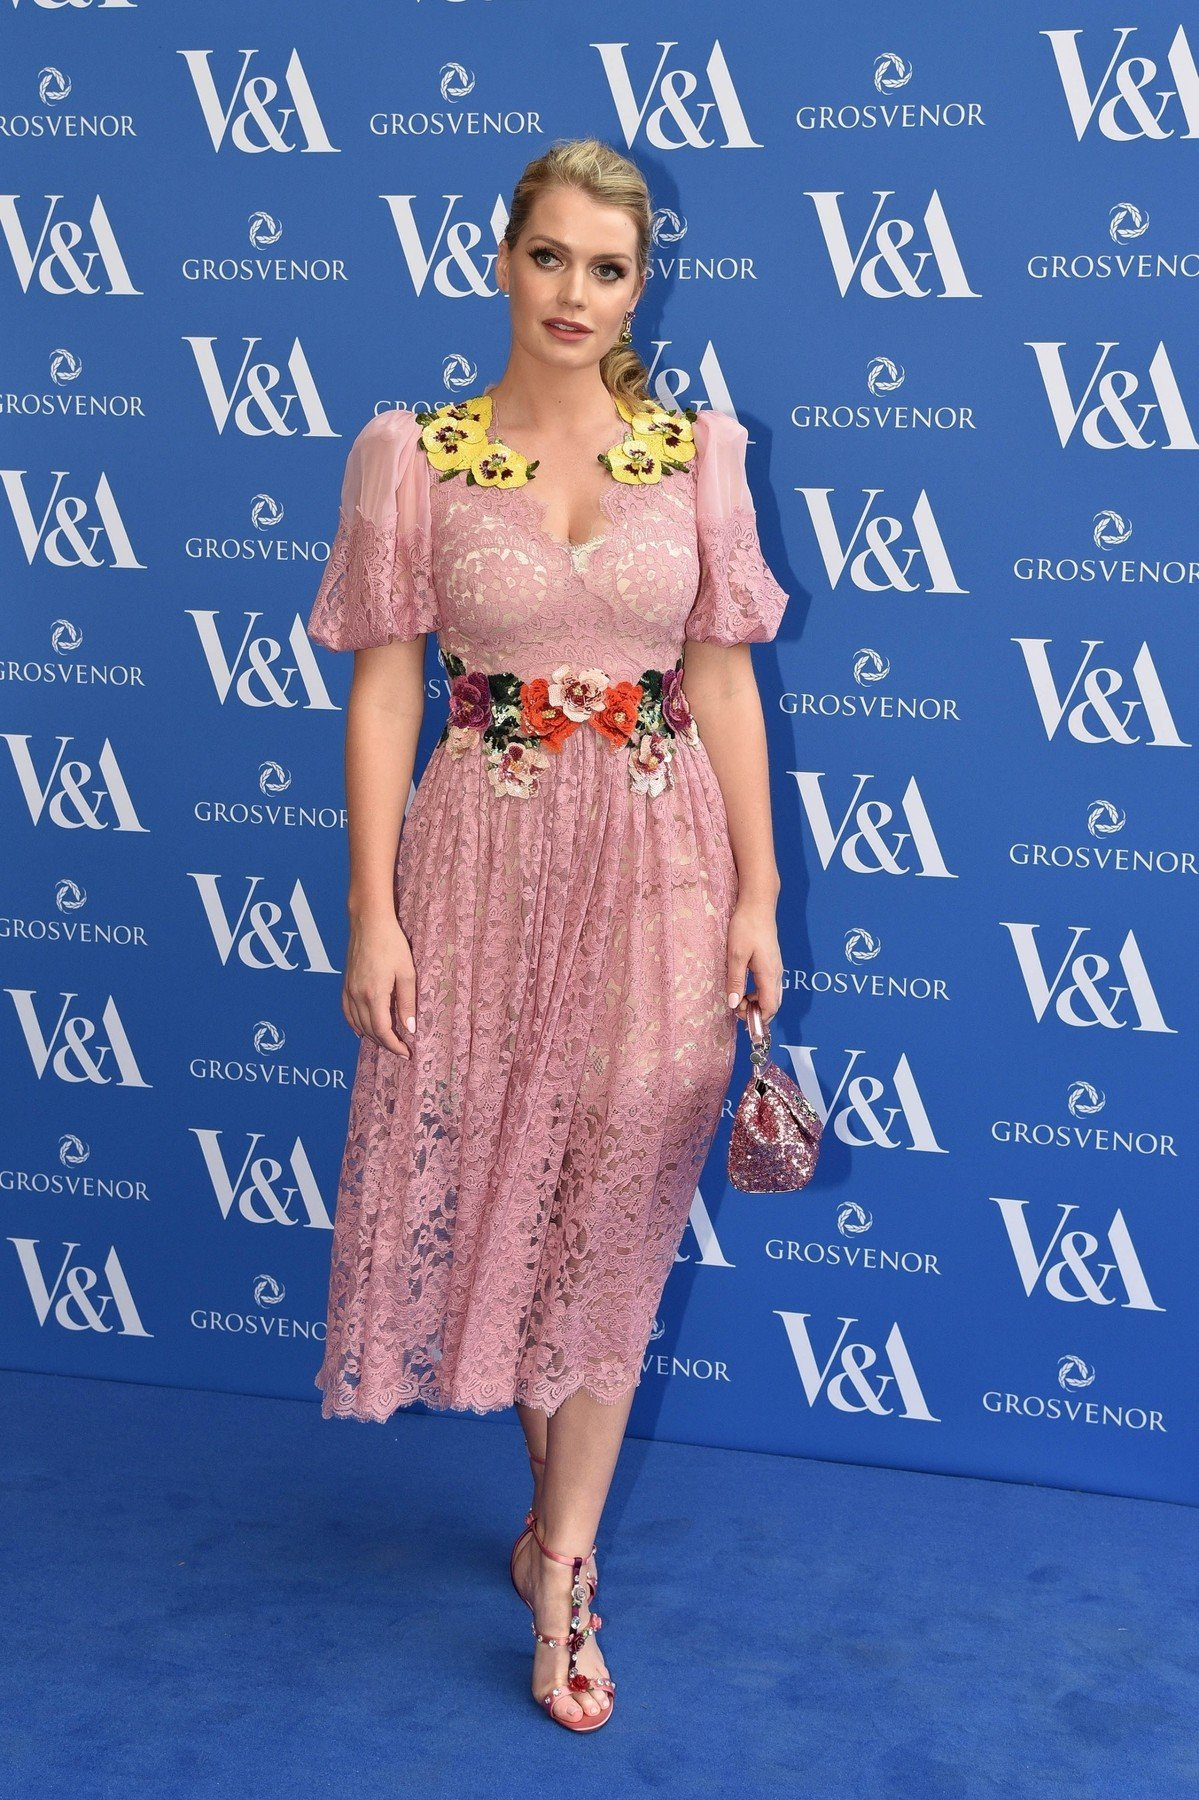 BGUK_1261785 - London, UNITED KINGDOM  - Lady Kitty Spencer at the Frida Kahlo V&A VIP Private Preview at the Victoria & Albert Museum in London, UK.  Pictured: Lady Kitty Spencer  BACKGRID UK 13 JUNE 2018, Image: 374802969, License: Rights-managed, Restrictions: , Model Release: no, Credit line: Profimedia, Xposurephotos